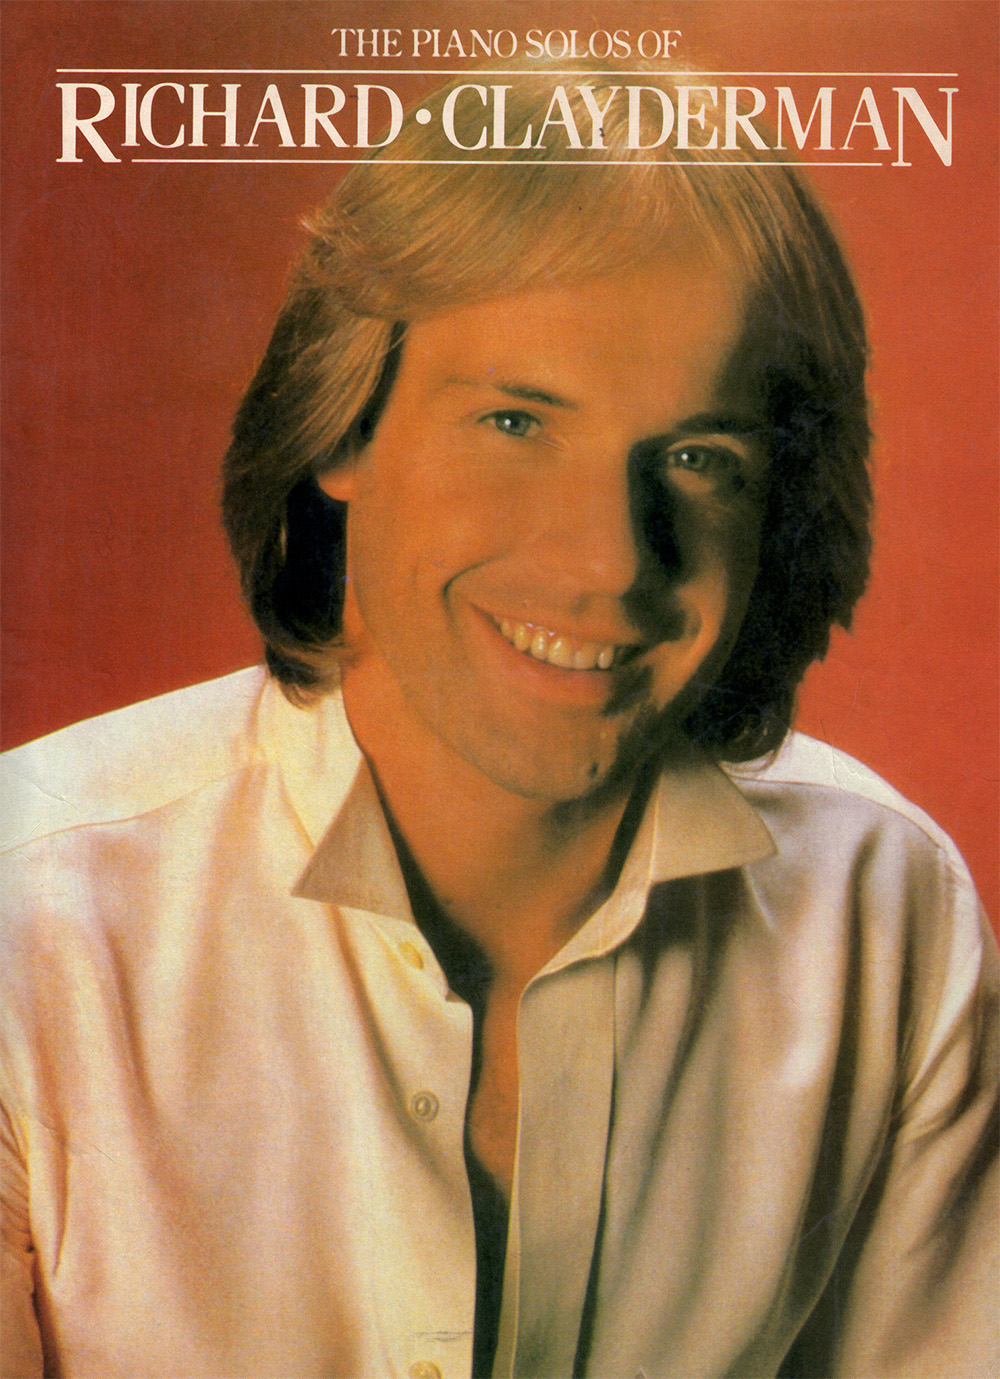 Folio: Piano Solos Of Richard Clayderman - Book 1